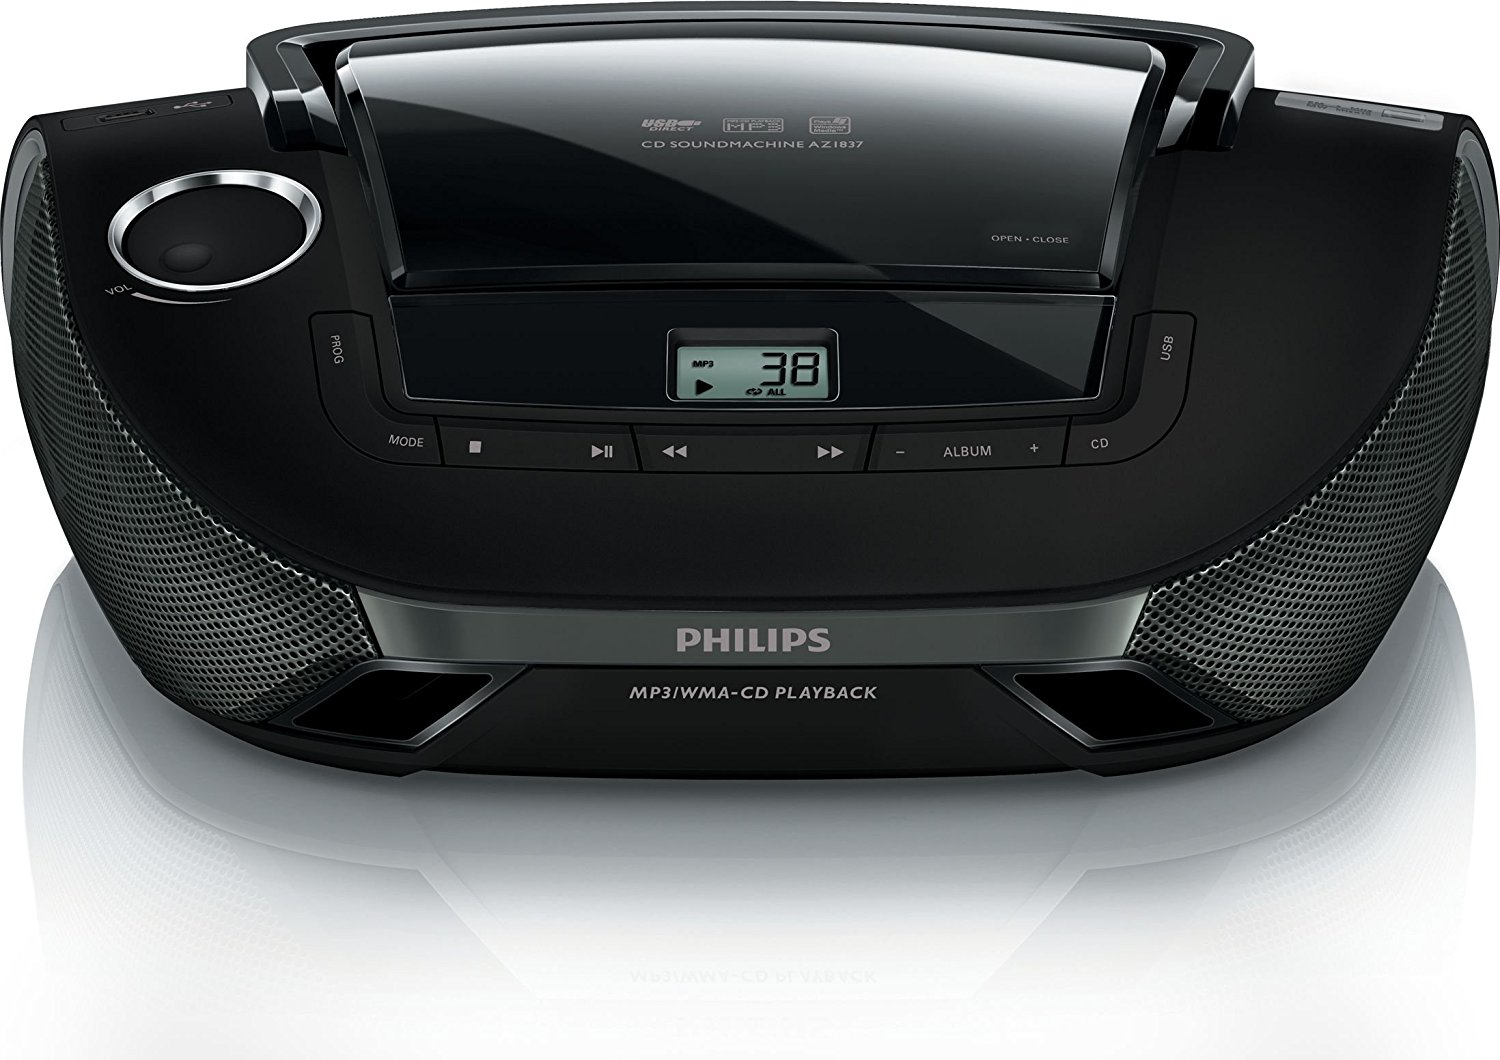 Philips AZ1837 55 CD Player Boombox Sound Machine AM FM Radio Stereo Speaker System with USB AUX by Philips